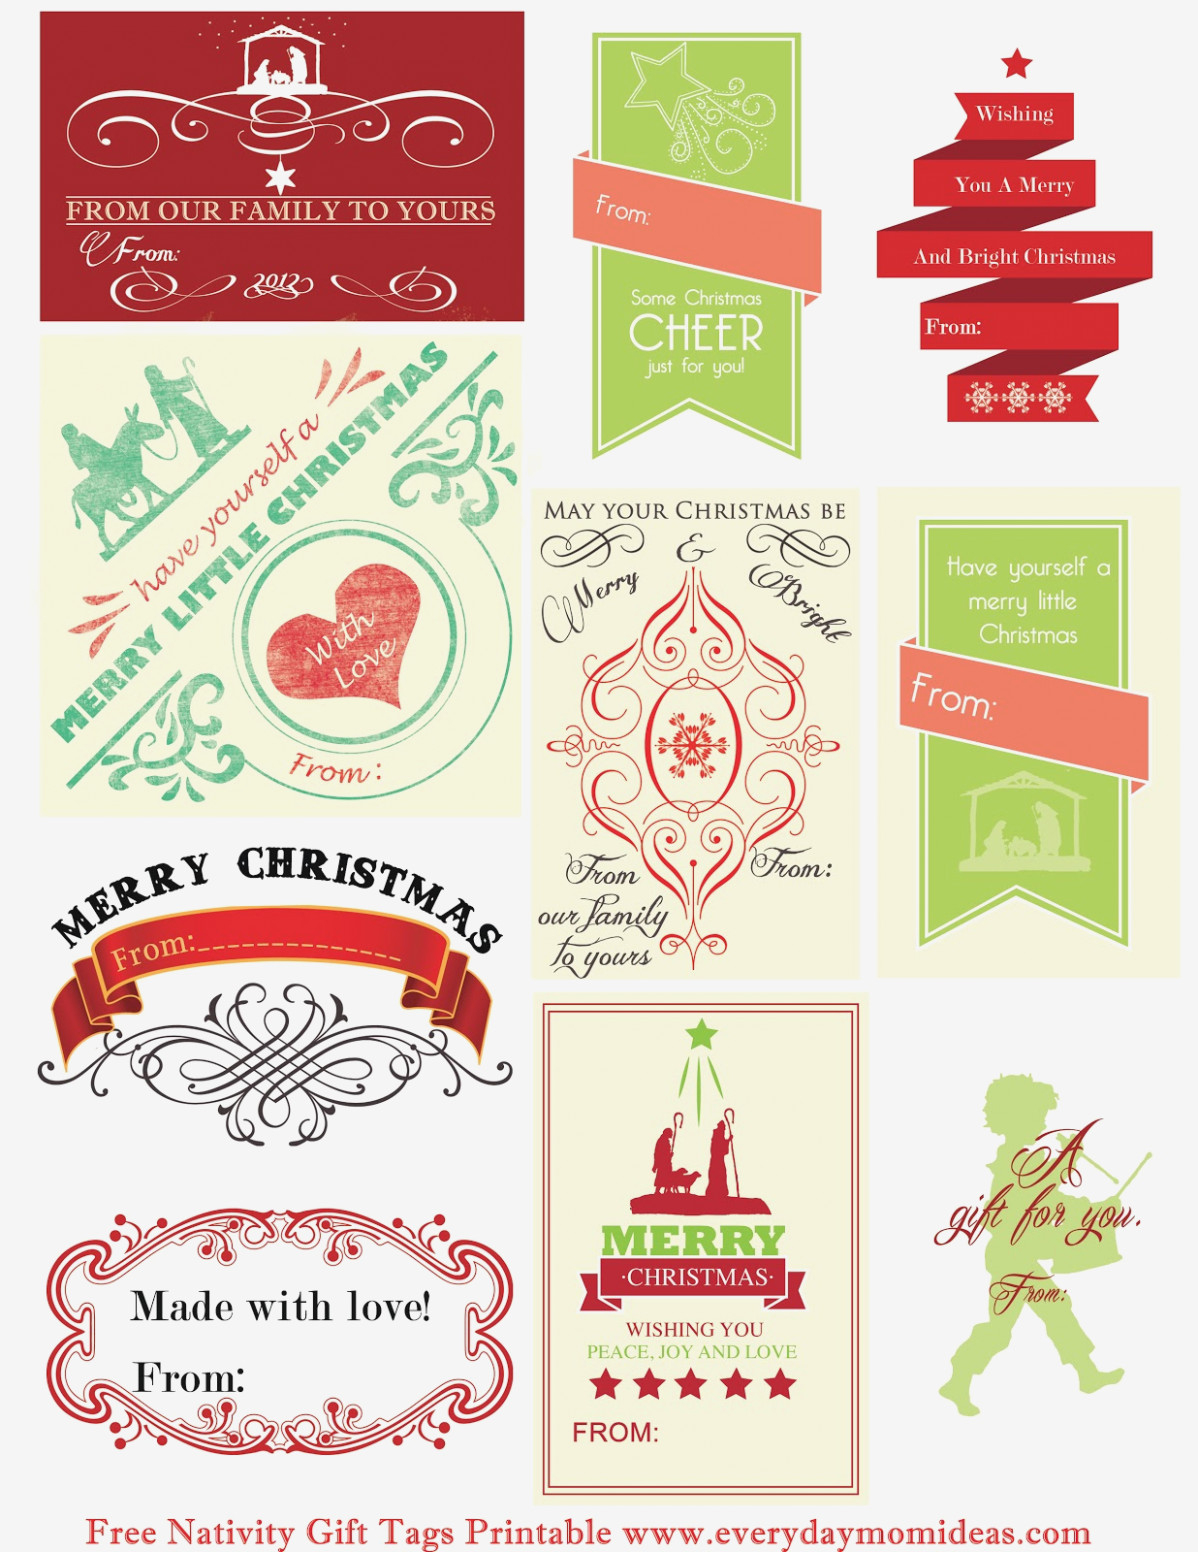 Free Personalized Christmas Gift Tags – Fun For Christmas - Free Printable Customizable Gift Tags